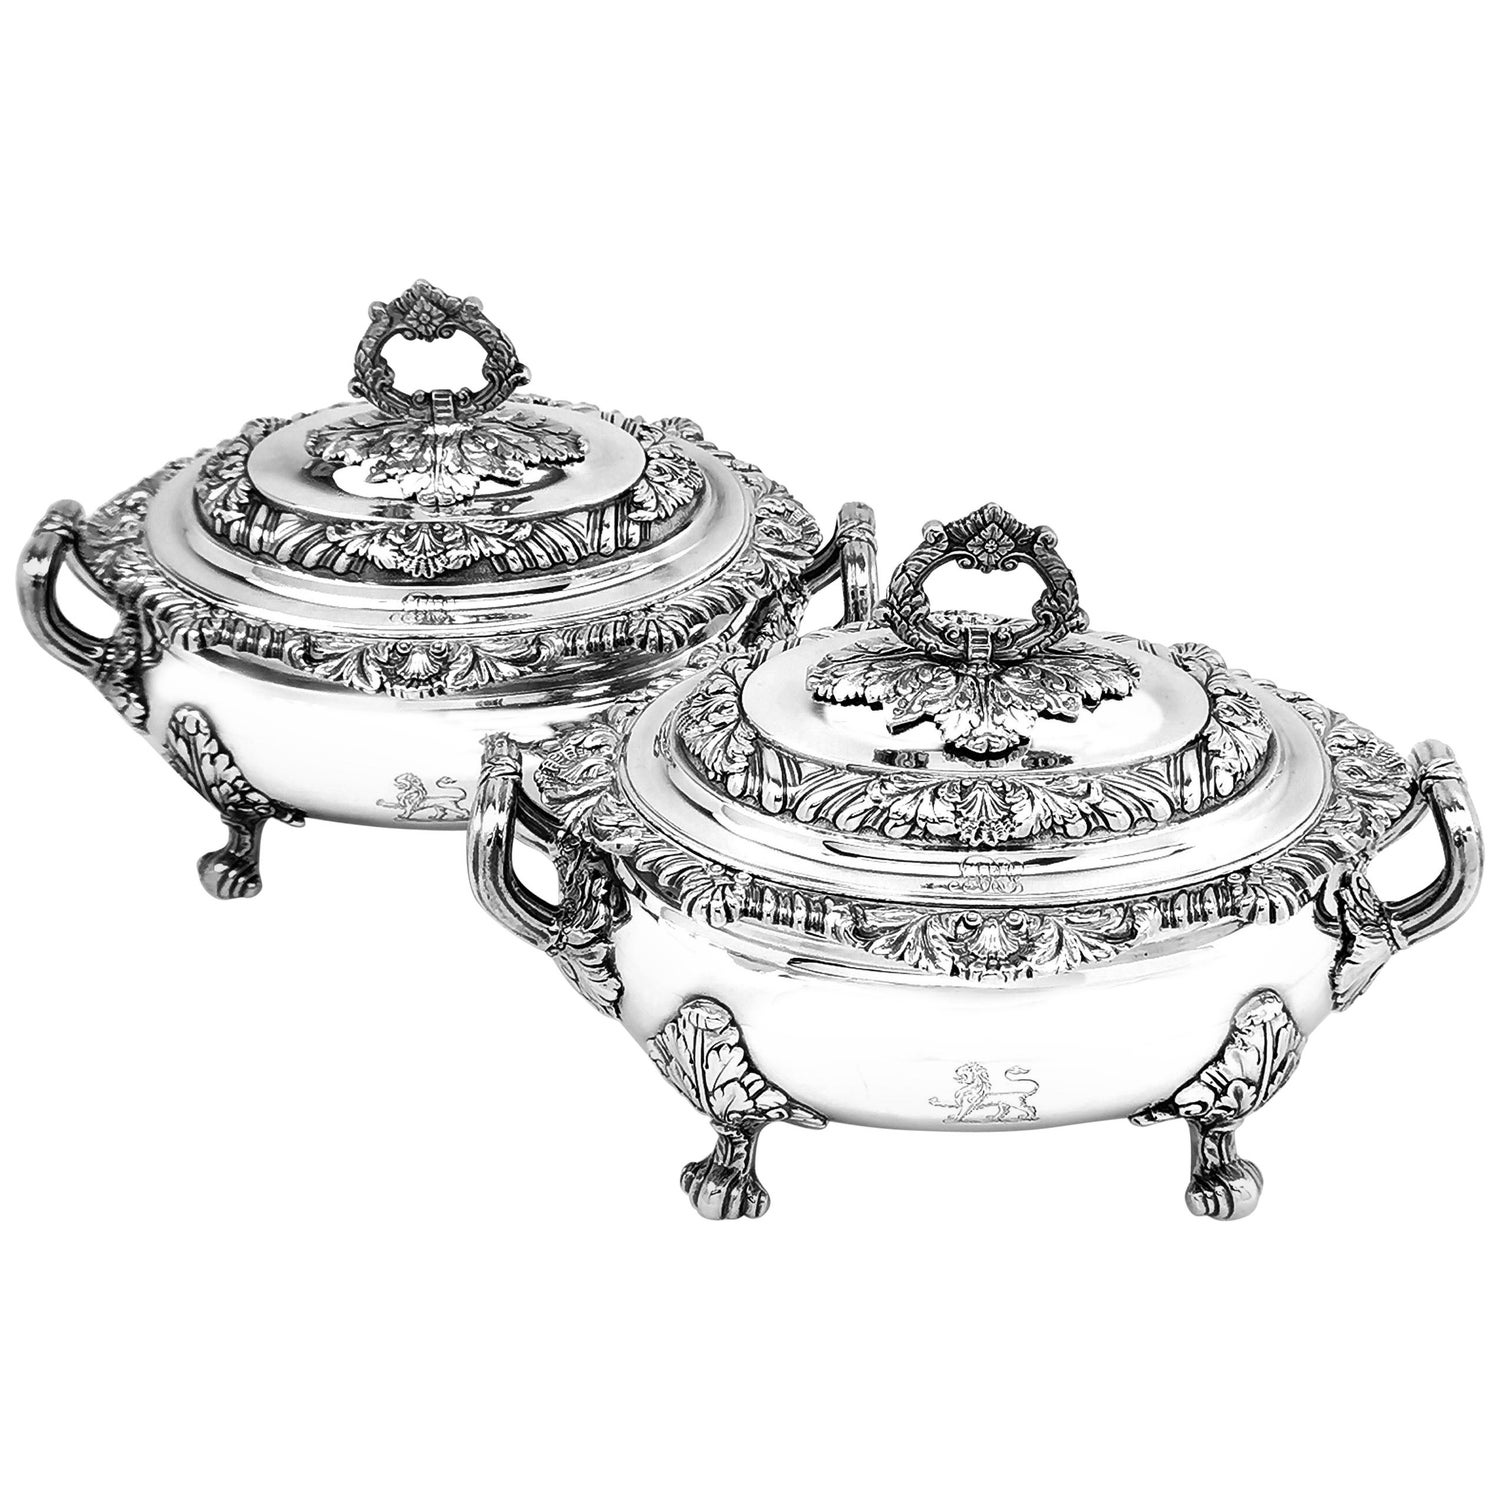 Pair of Antique Georgian Sterling Silver Sauce Tureens, 1821